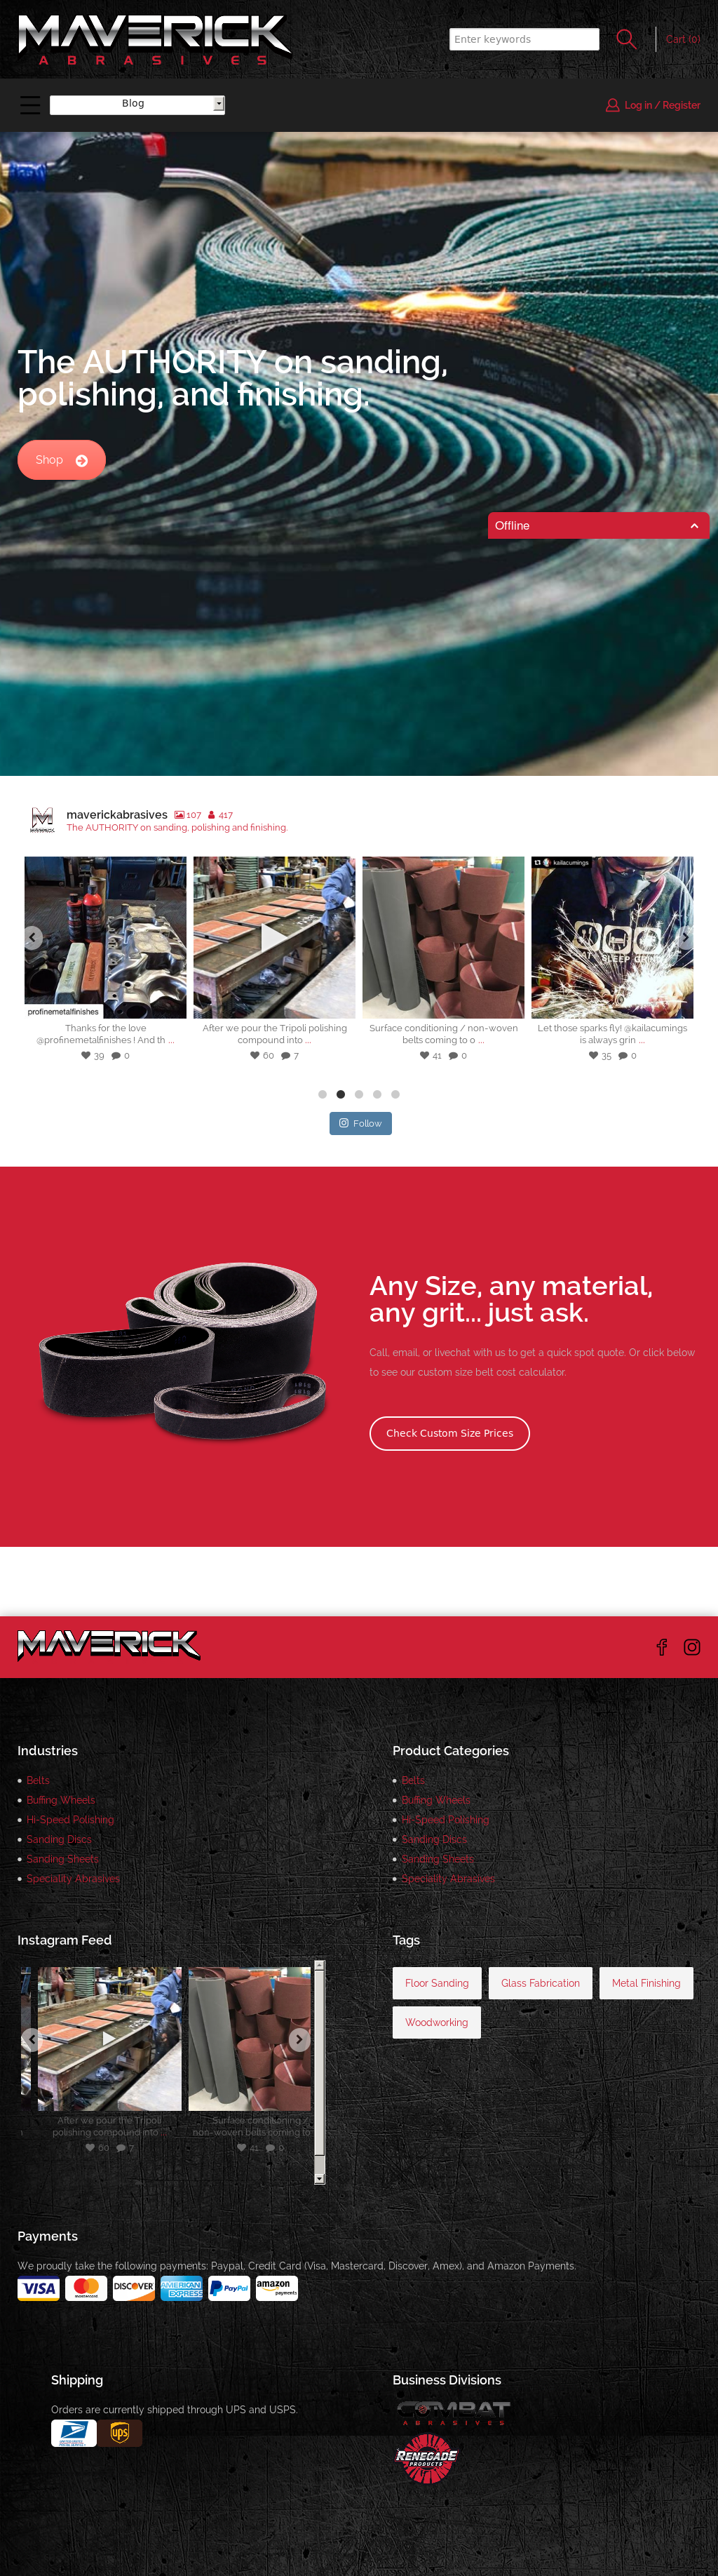 Maverick Abrasives Competitors, Revenue and Employees - Owler